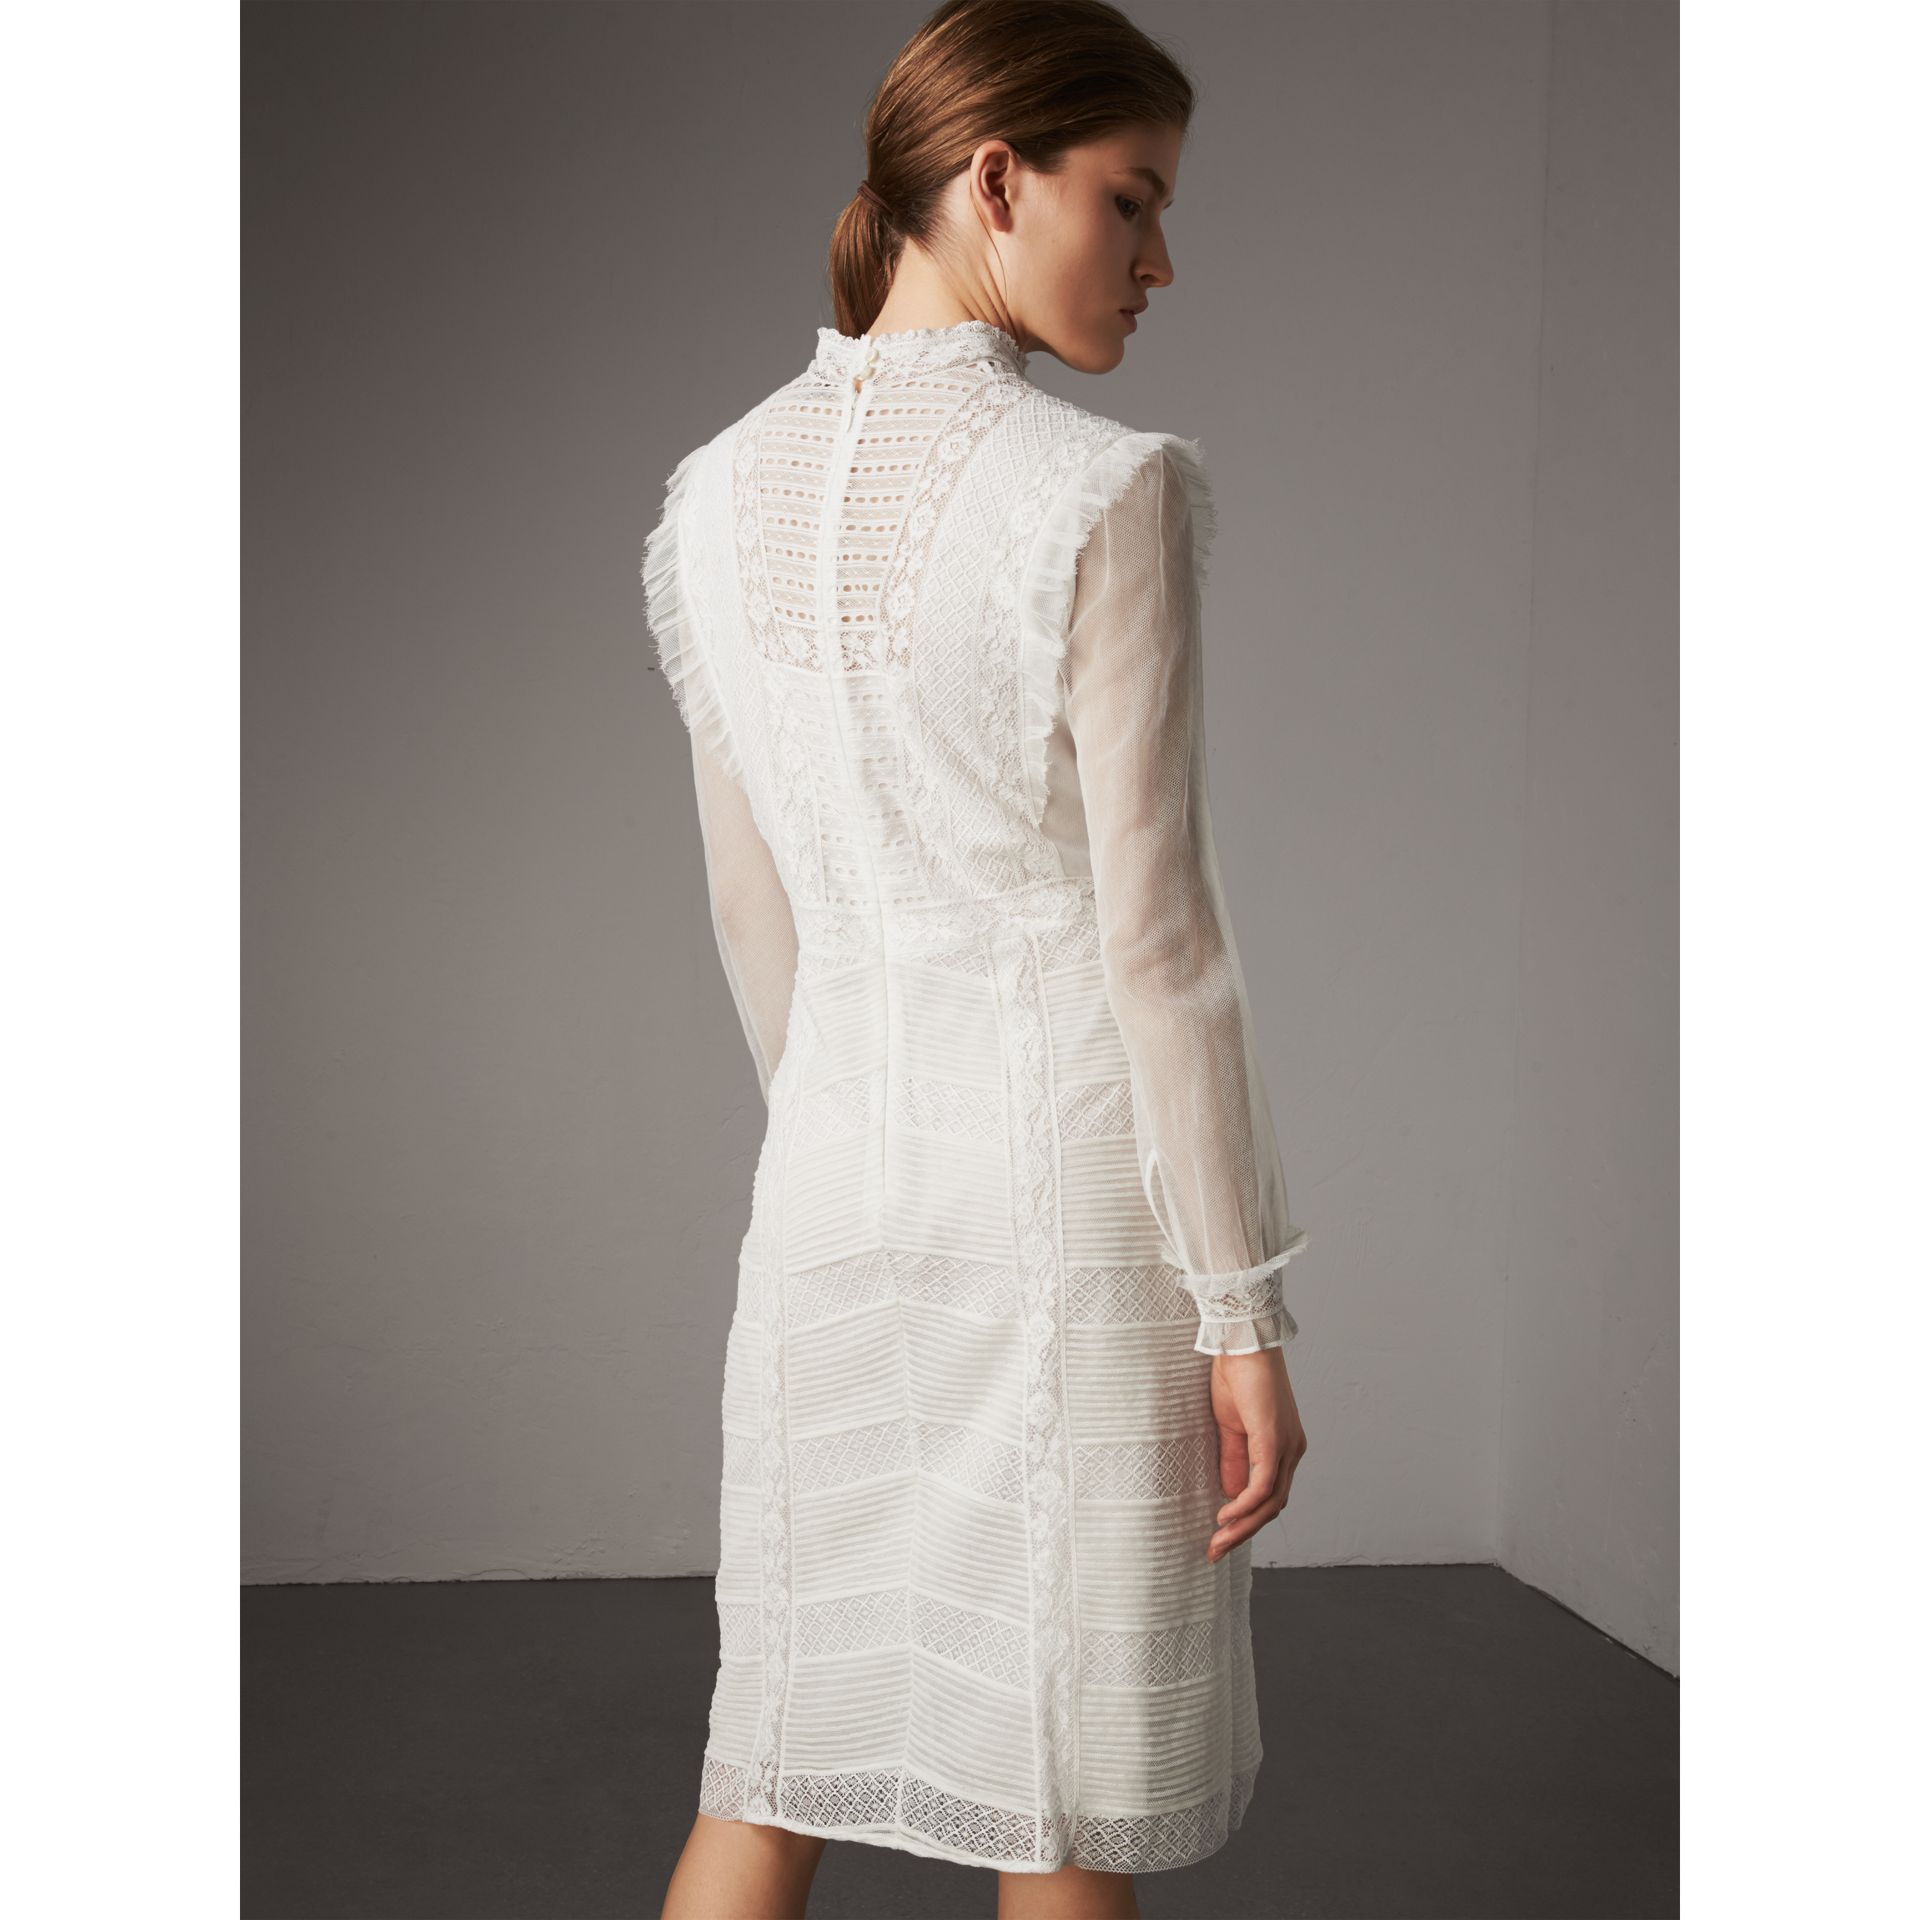 Ruffle Detail Lace Mesh Dress in White - Women | Burberry - gallery image 3